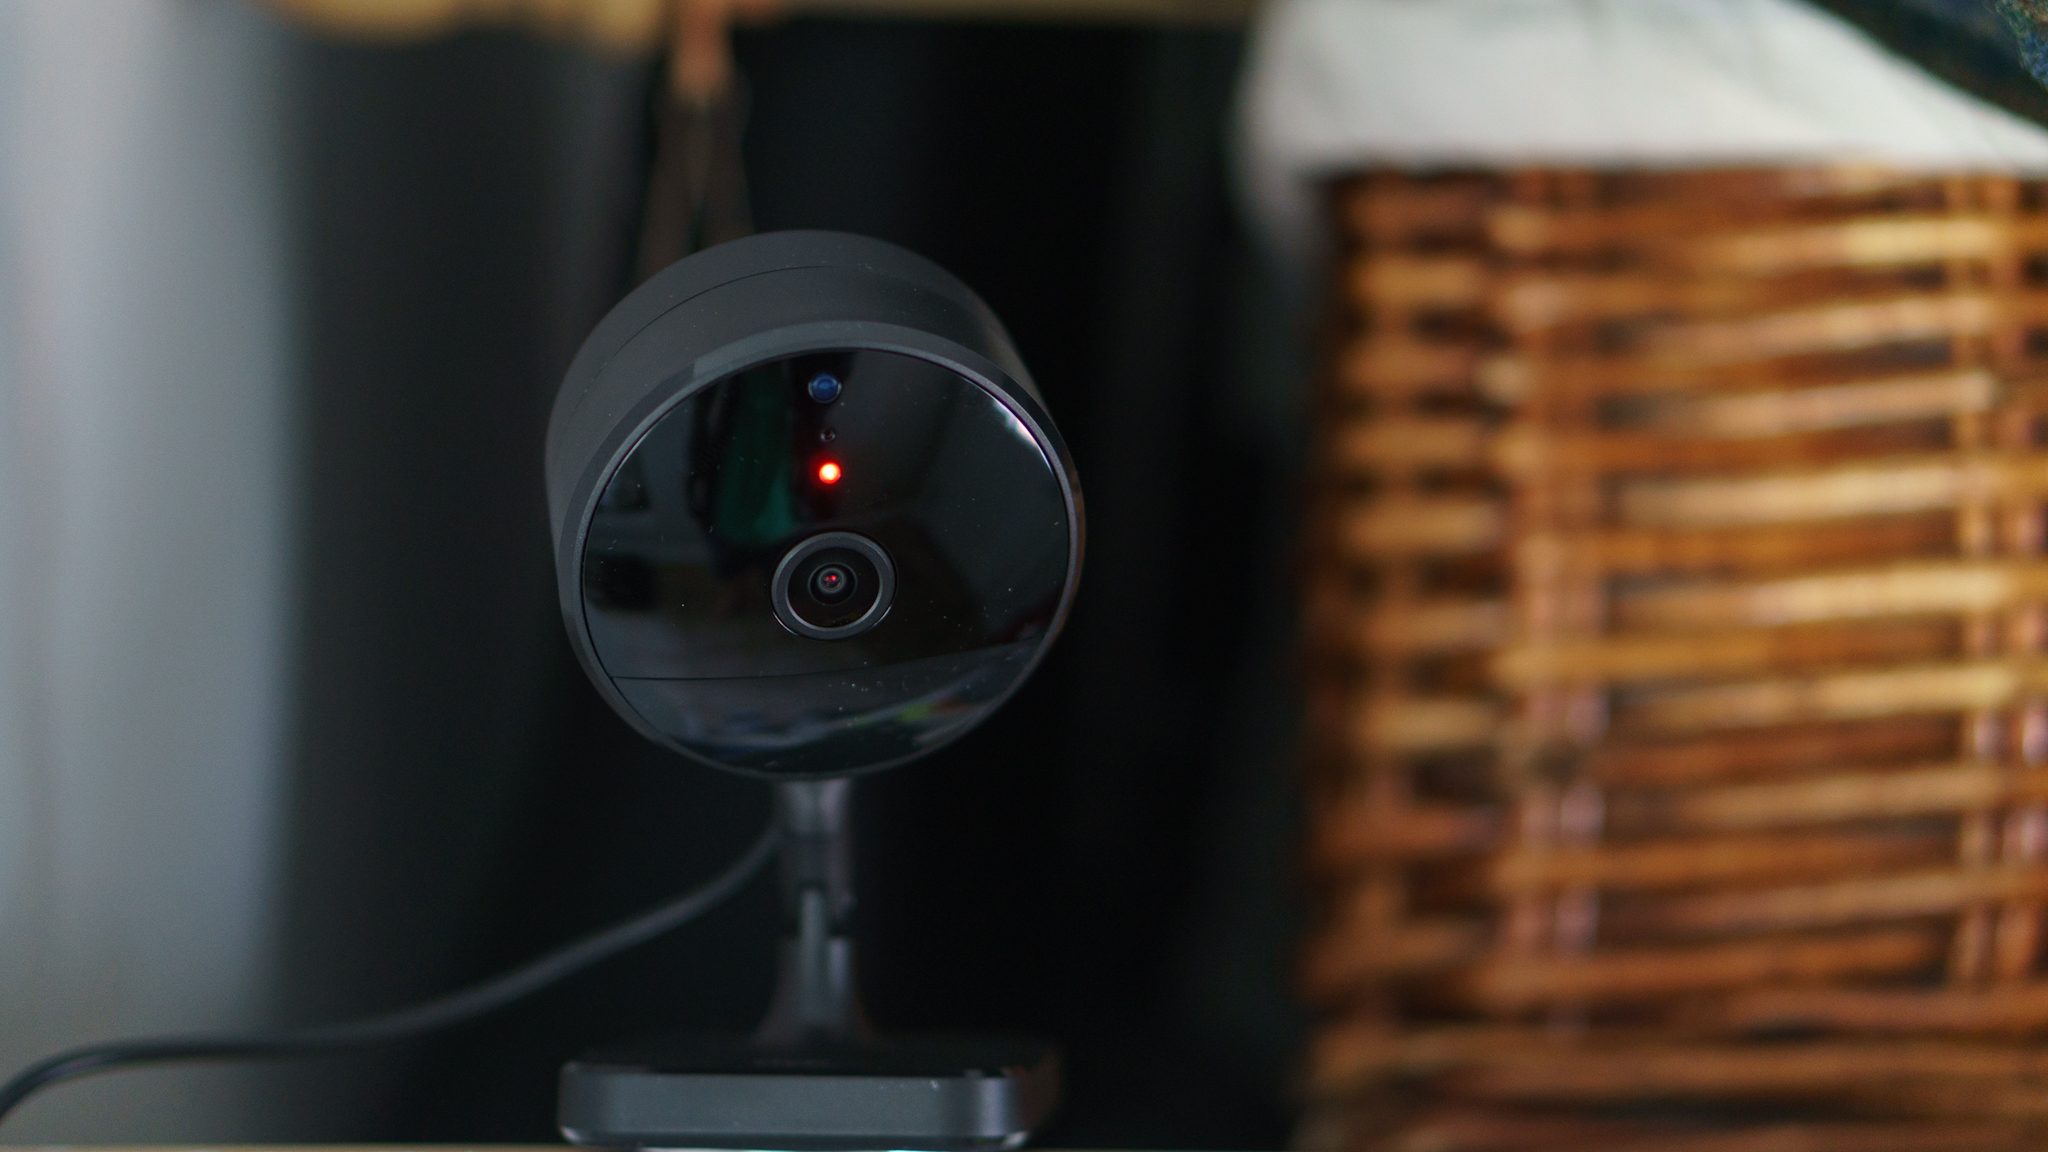 Eve Cam: An Excellent Addition to a HomeKit Secure Video Setup